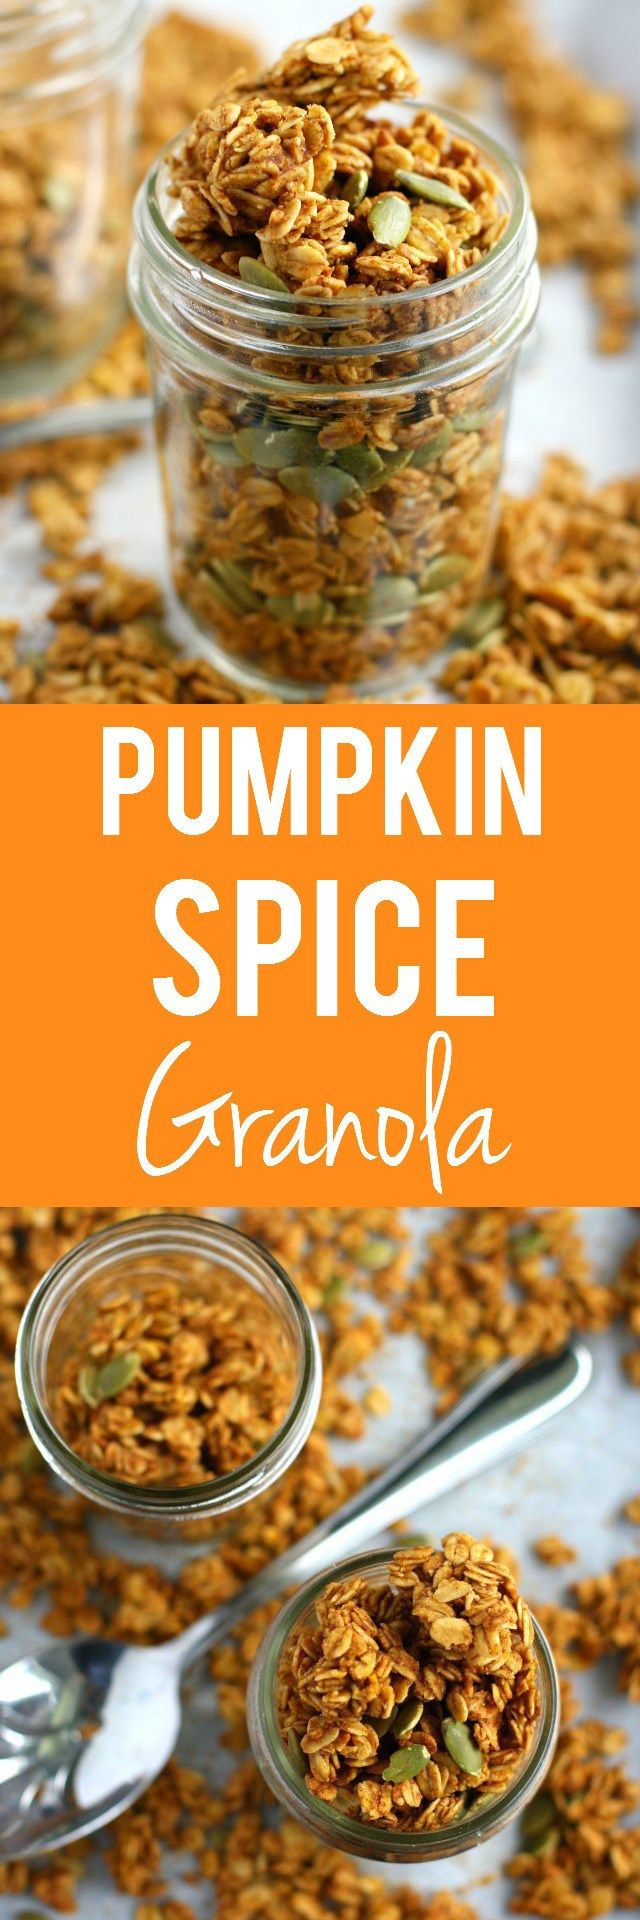 Make this easy pumpkin spice granola for a perfect fall breakfast or snack!